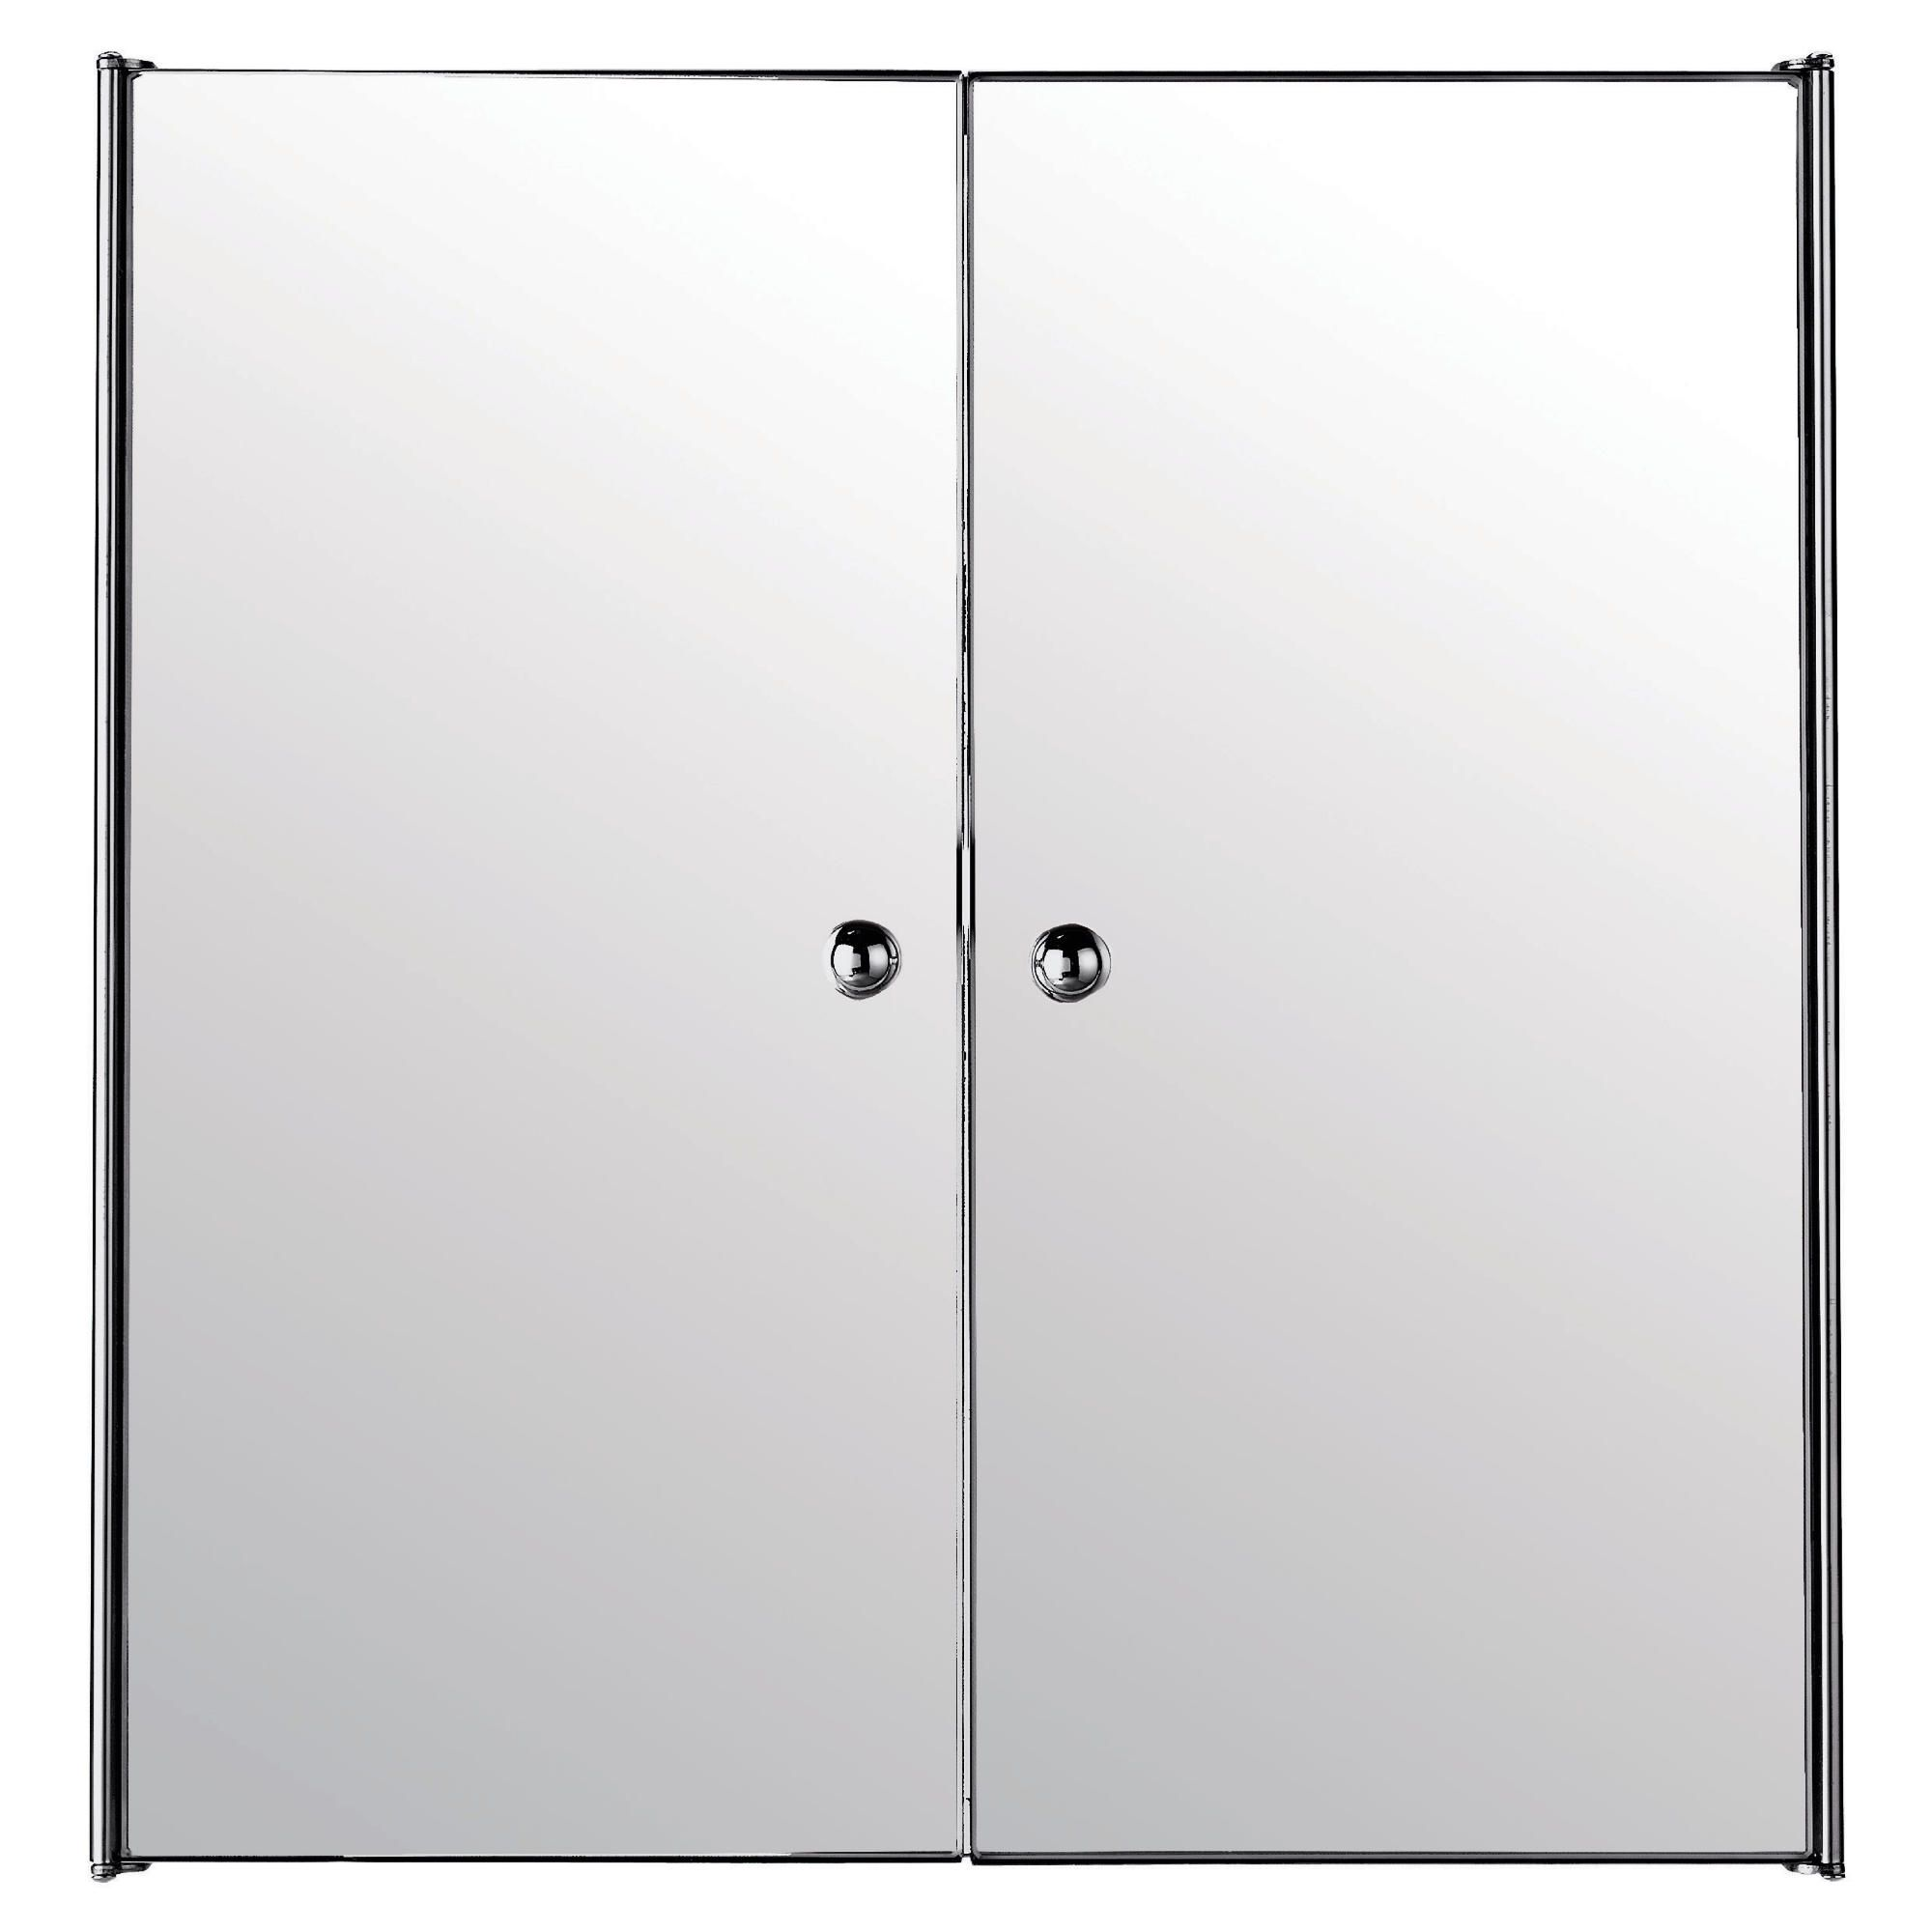 Other Stainless Steel Mirrored Double Door Bathroom Cabinet